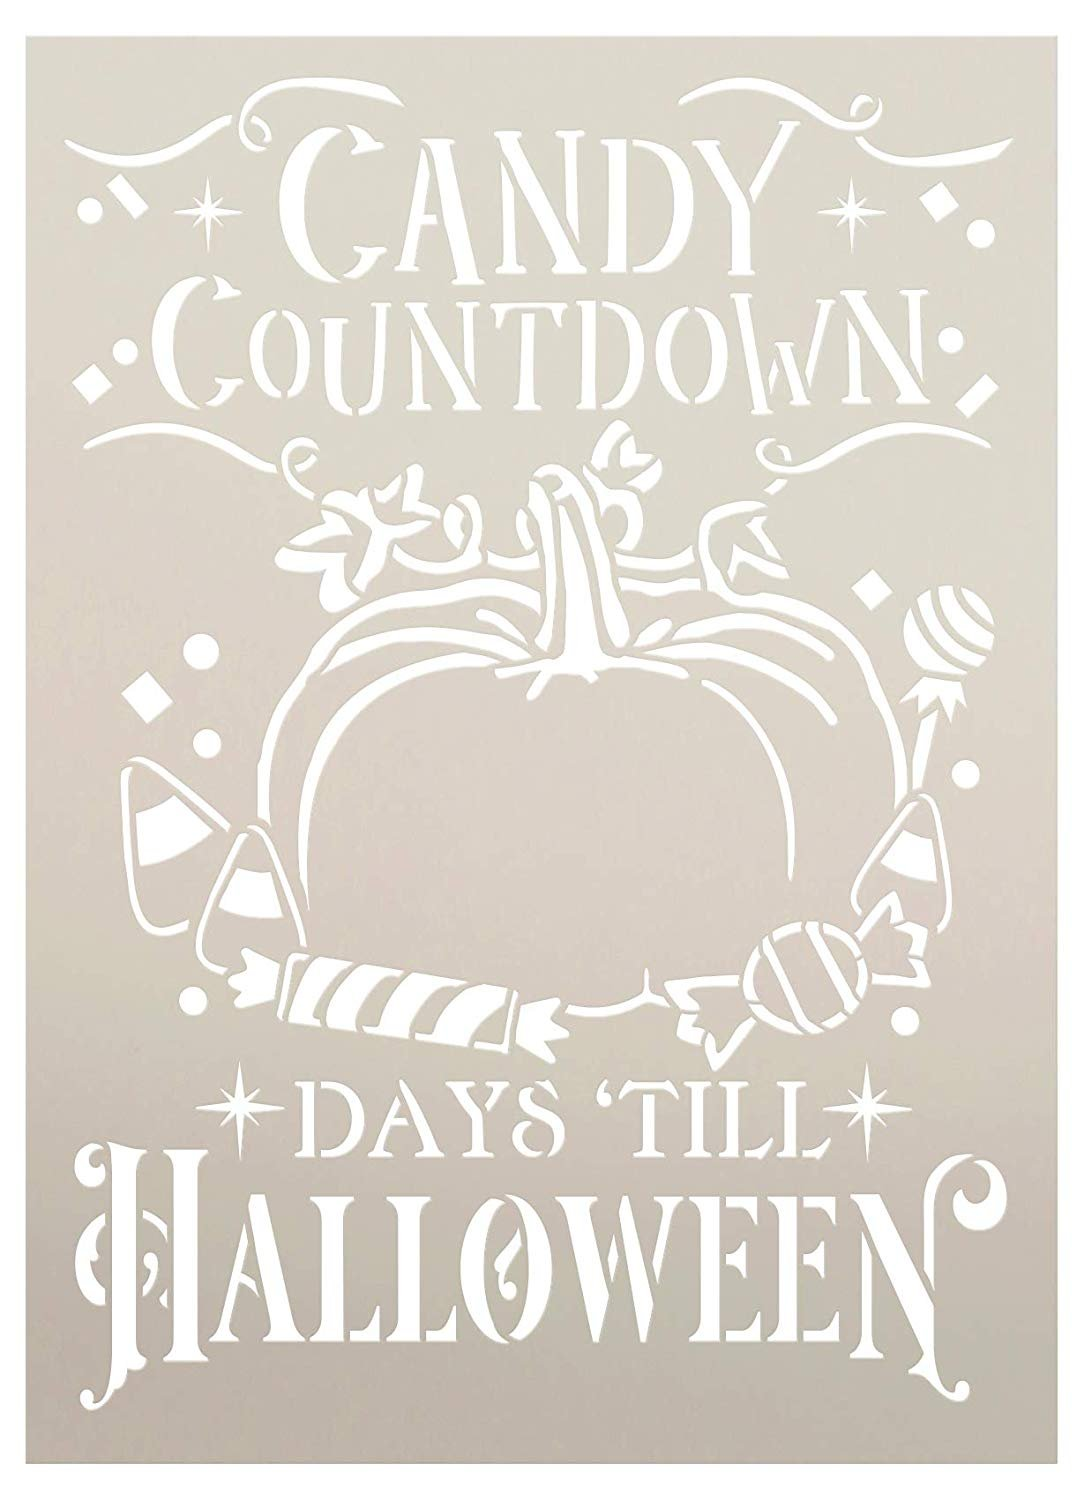 Candy Countdown Stencil with Pumpkin by StudioR12 | DIY Trick or Treat & Halloween Home Decor | Paint Wood Signs | Select Size